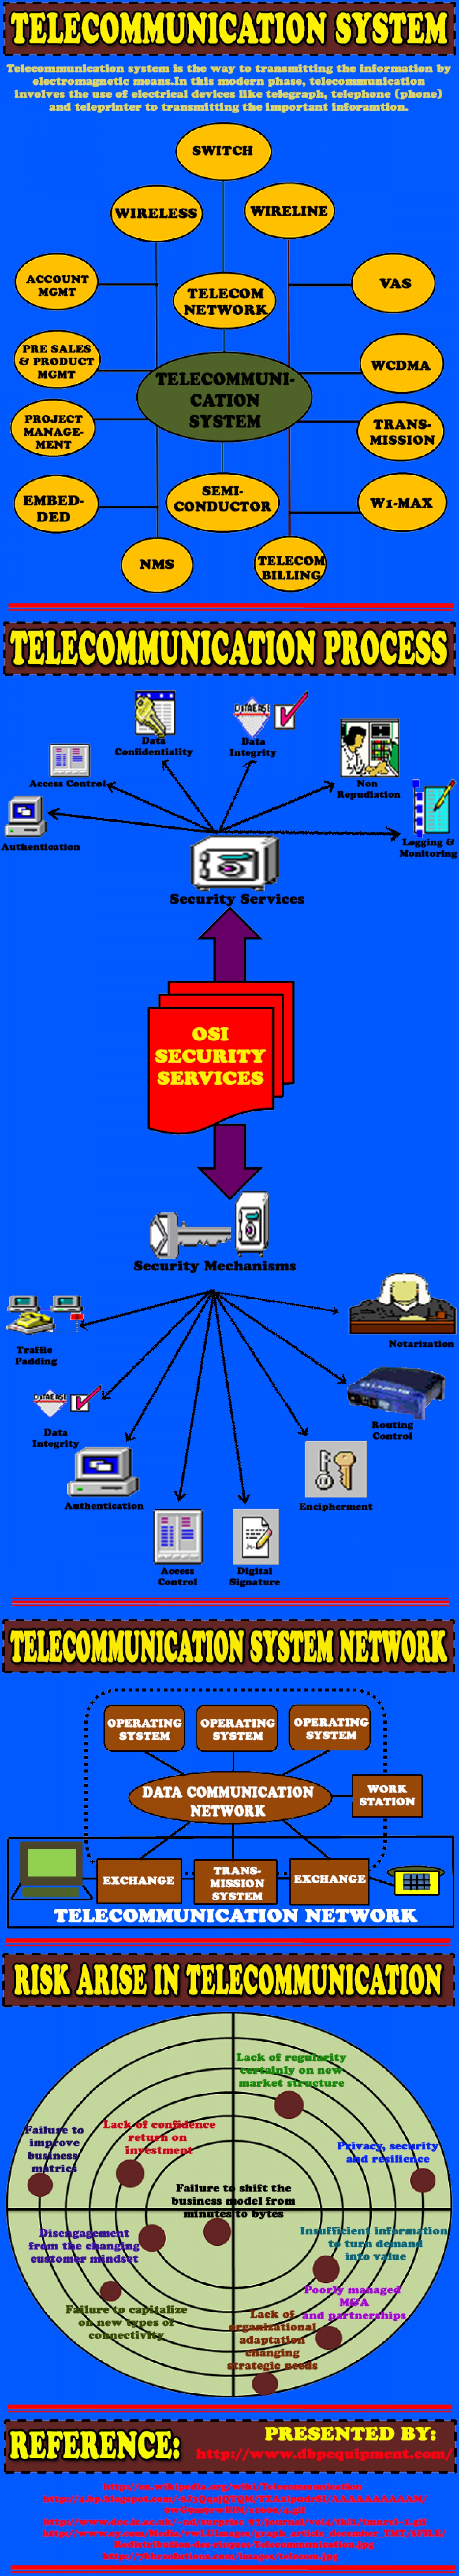 All Brands of IT & Networking Equipment, New & Used Phones & Telecom Systems, Infographic